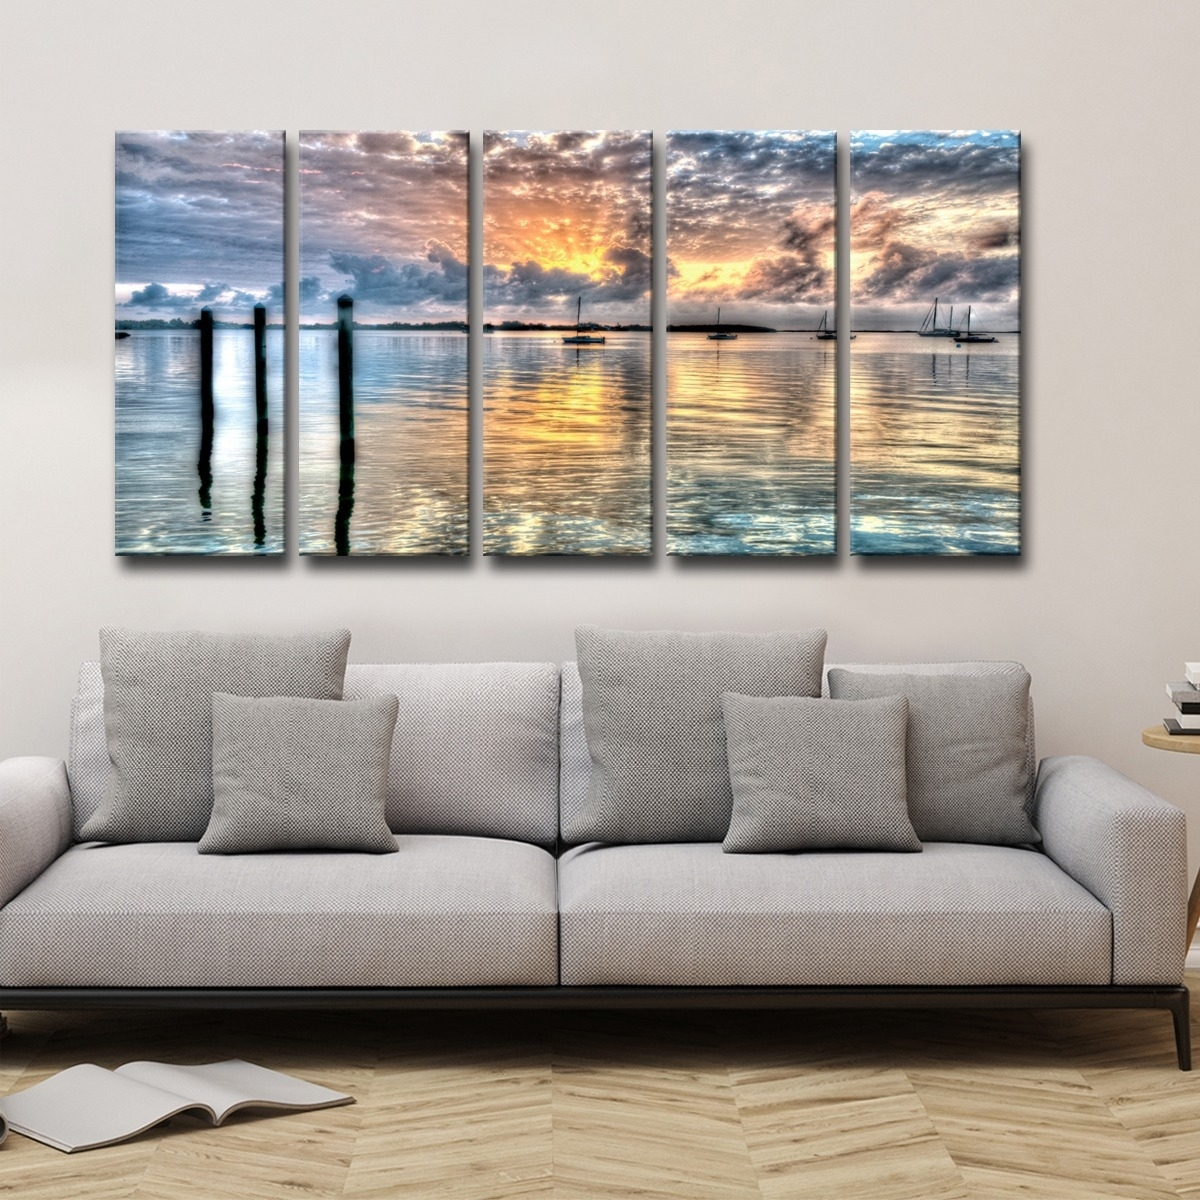 Shop Bruce Bain 'calm Waters' 5 Piece Canvas Wall Art – Free Intended For Current Five Piece Canvas Wall Art (Gallery 10 of 20)